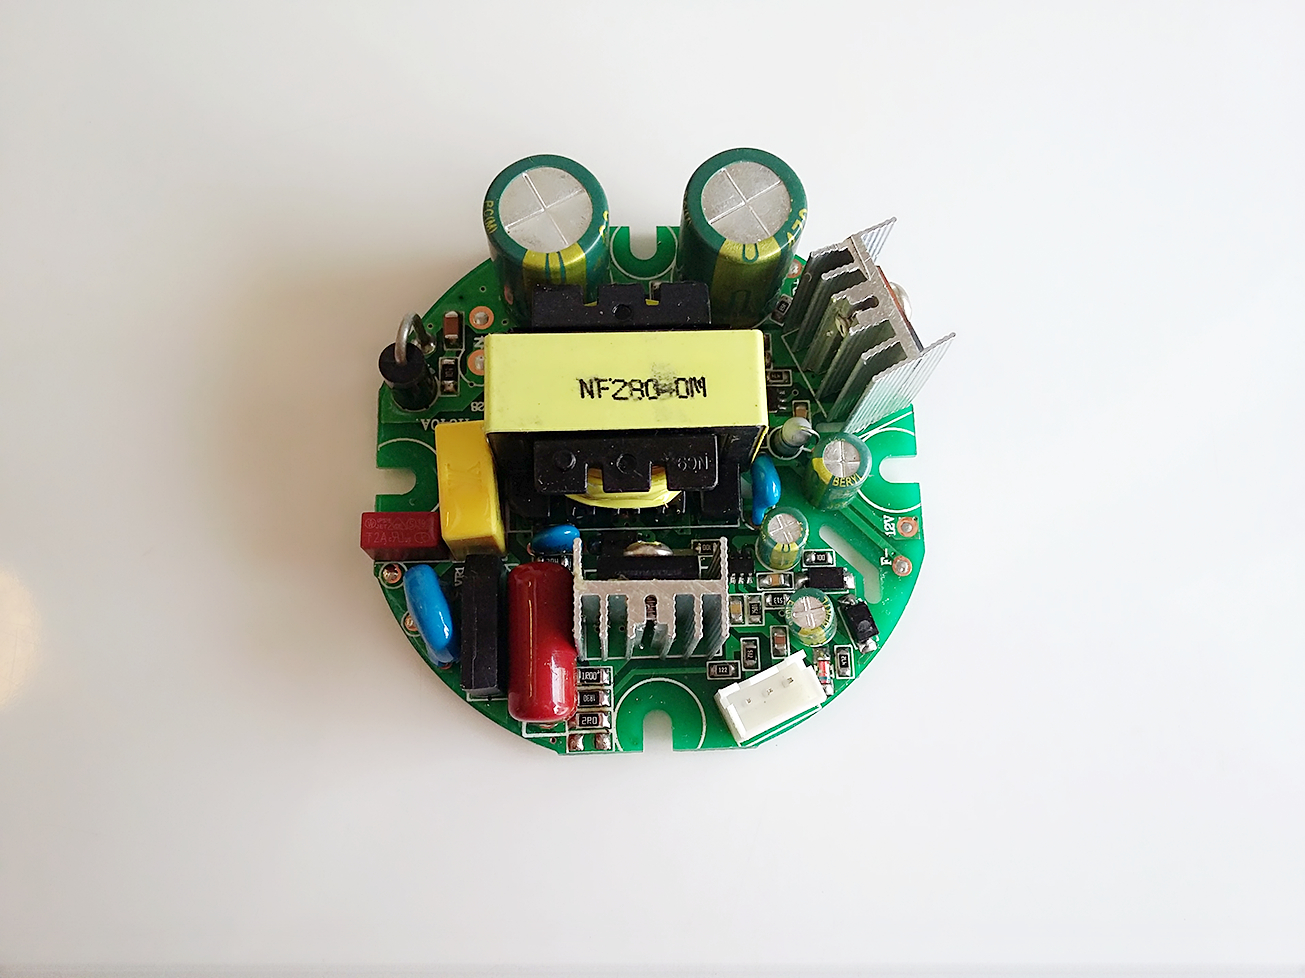 LED down lights drivers with fan circuit dimmable control 40W 680mA PF 0.9, No flicker